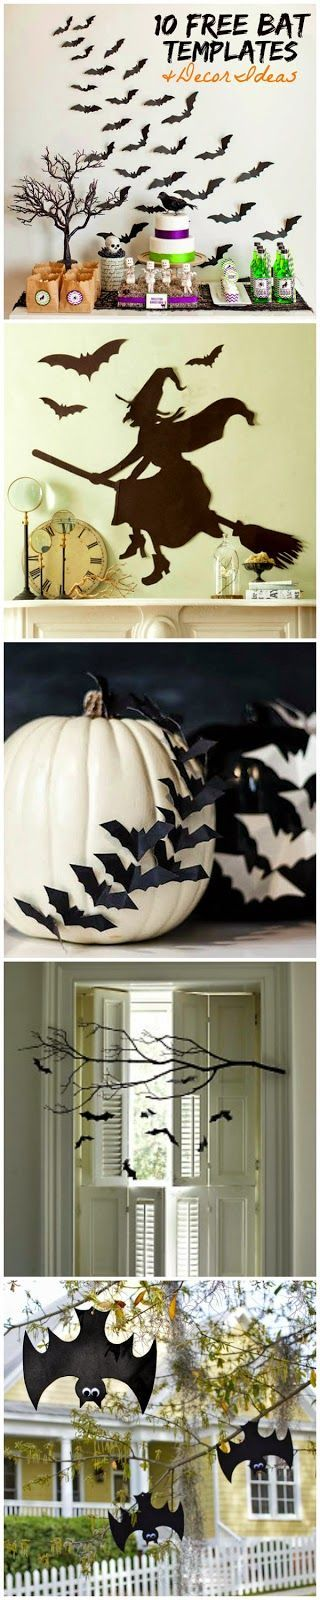 10 Free Printable Bat Templates and Halloween Decor Ideas! Love these.: